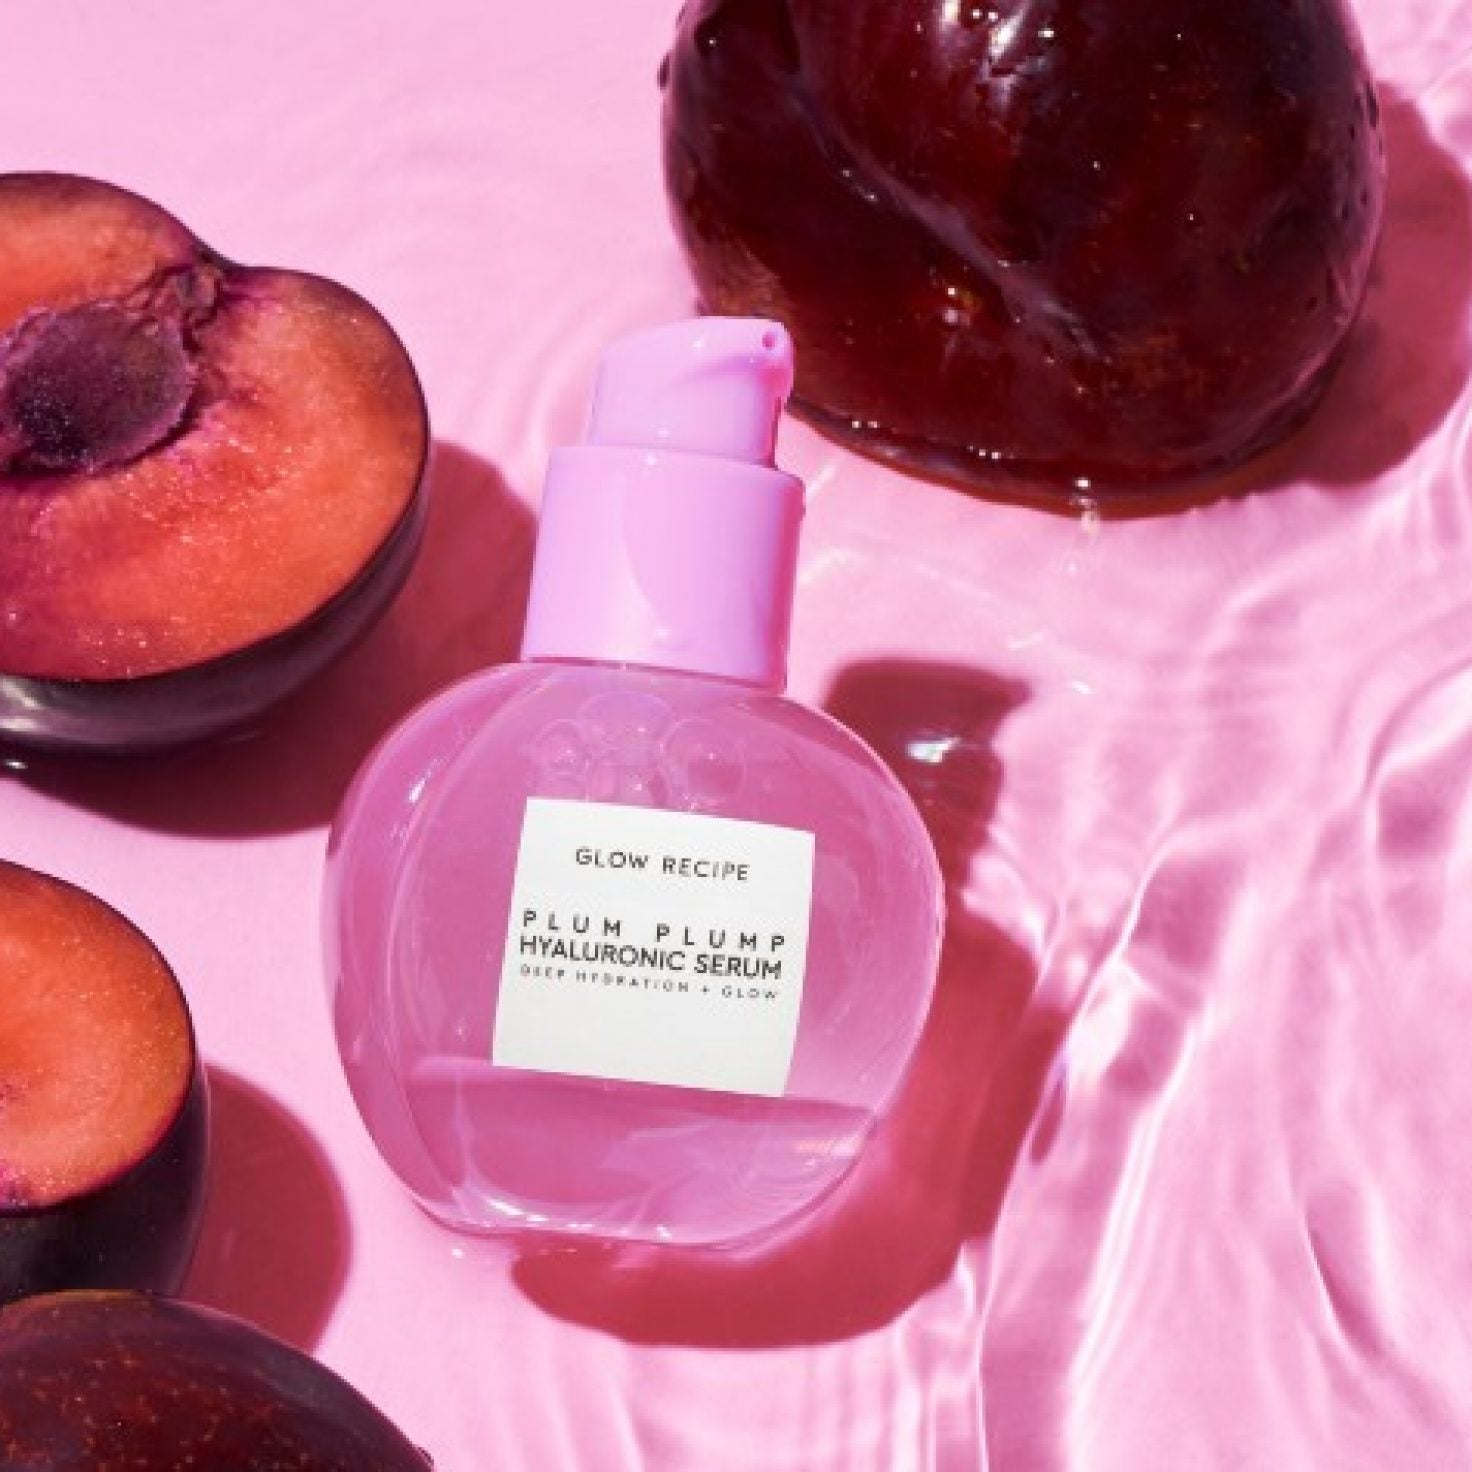 10 Hot New Beauty Products To Try Right Now